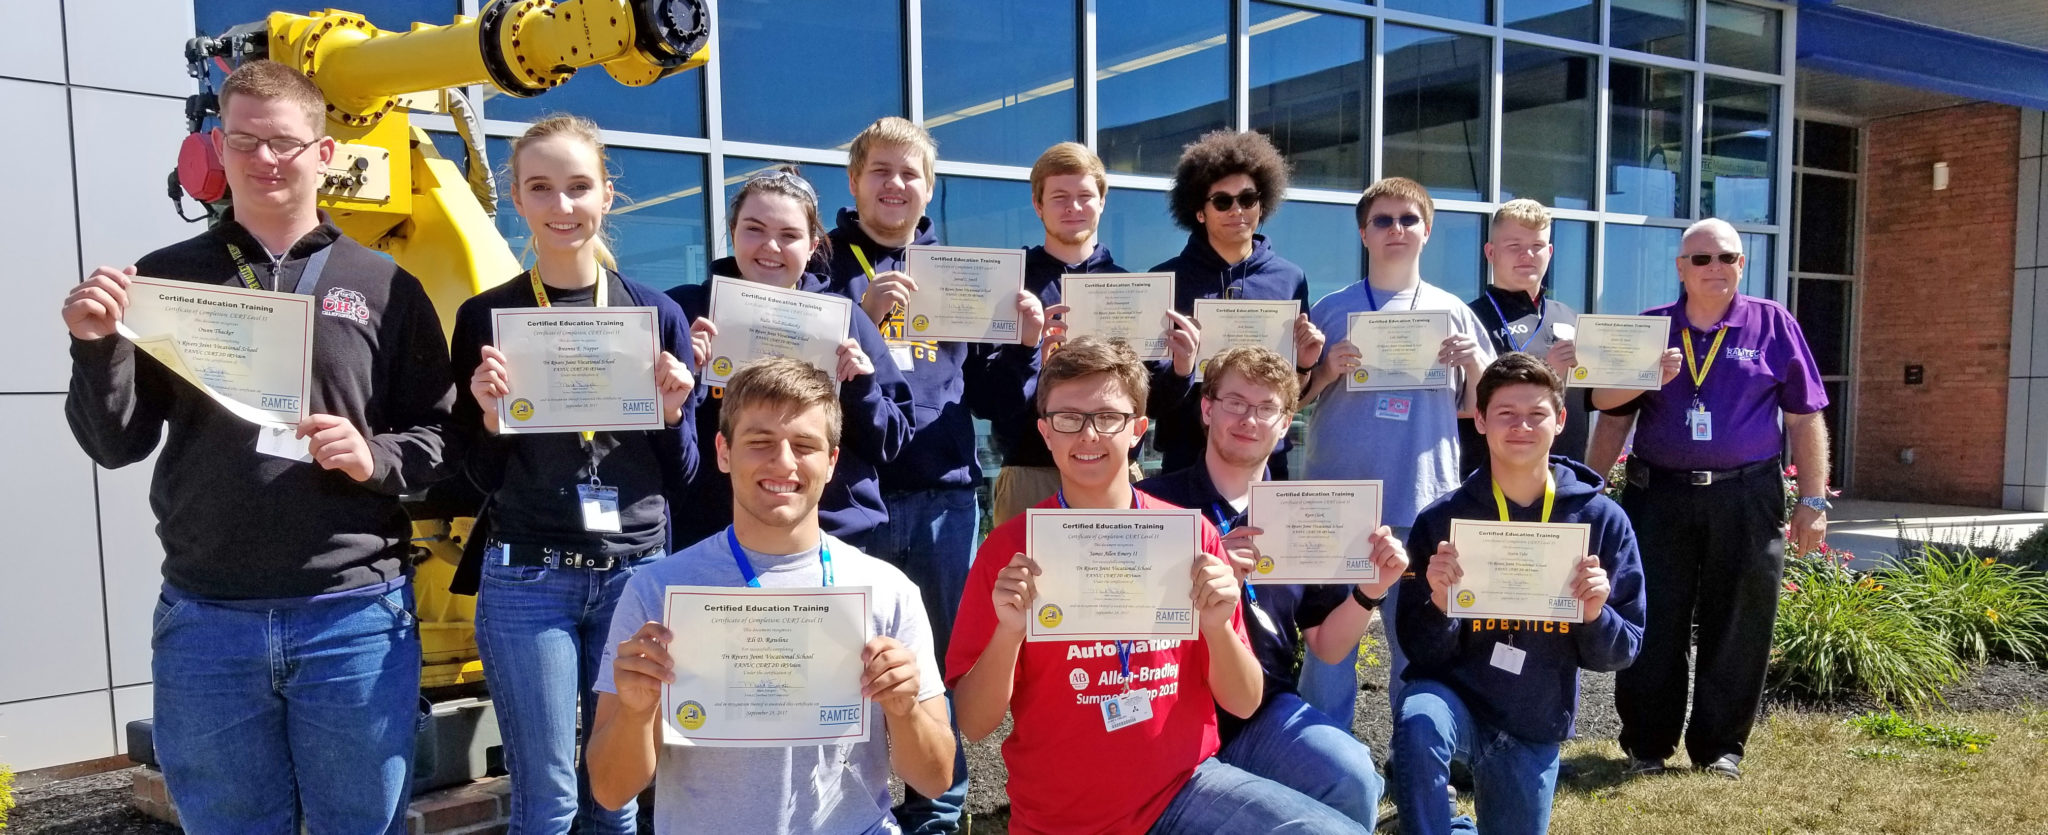 Tri-Rivers RAMTEC students 1st in nation to earn FANUC 2D iRVision